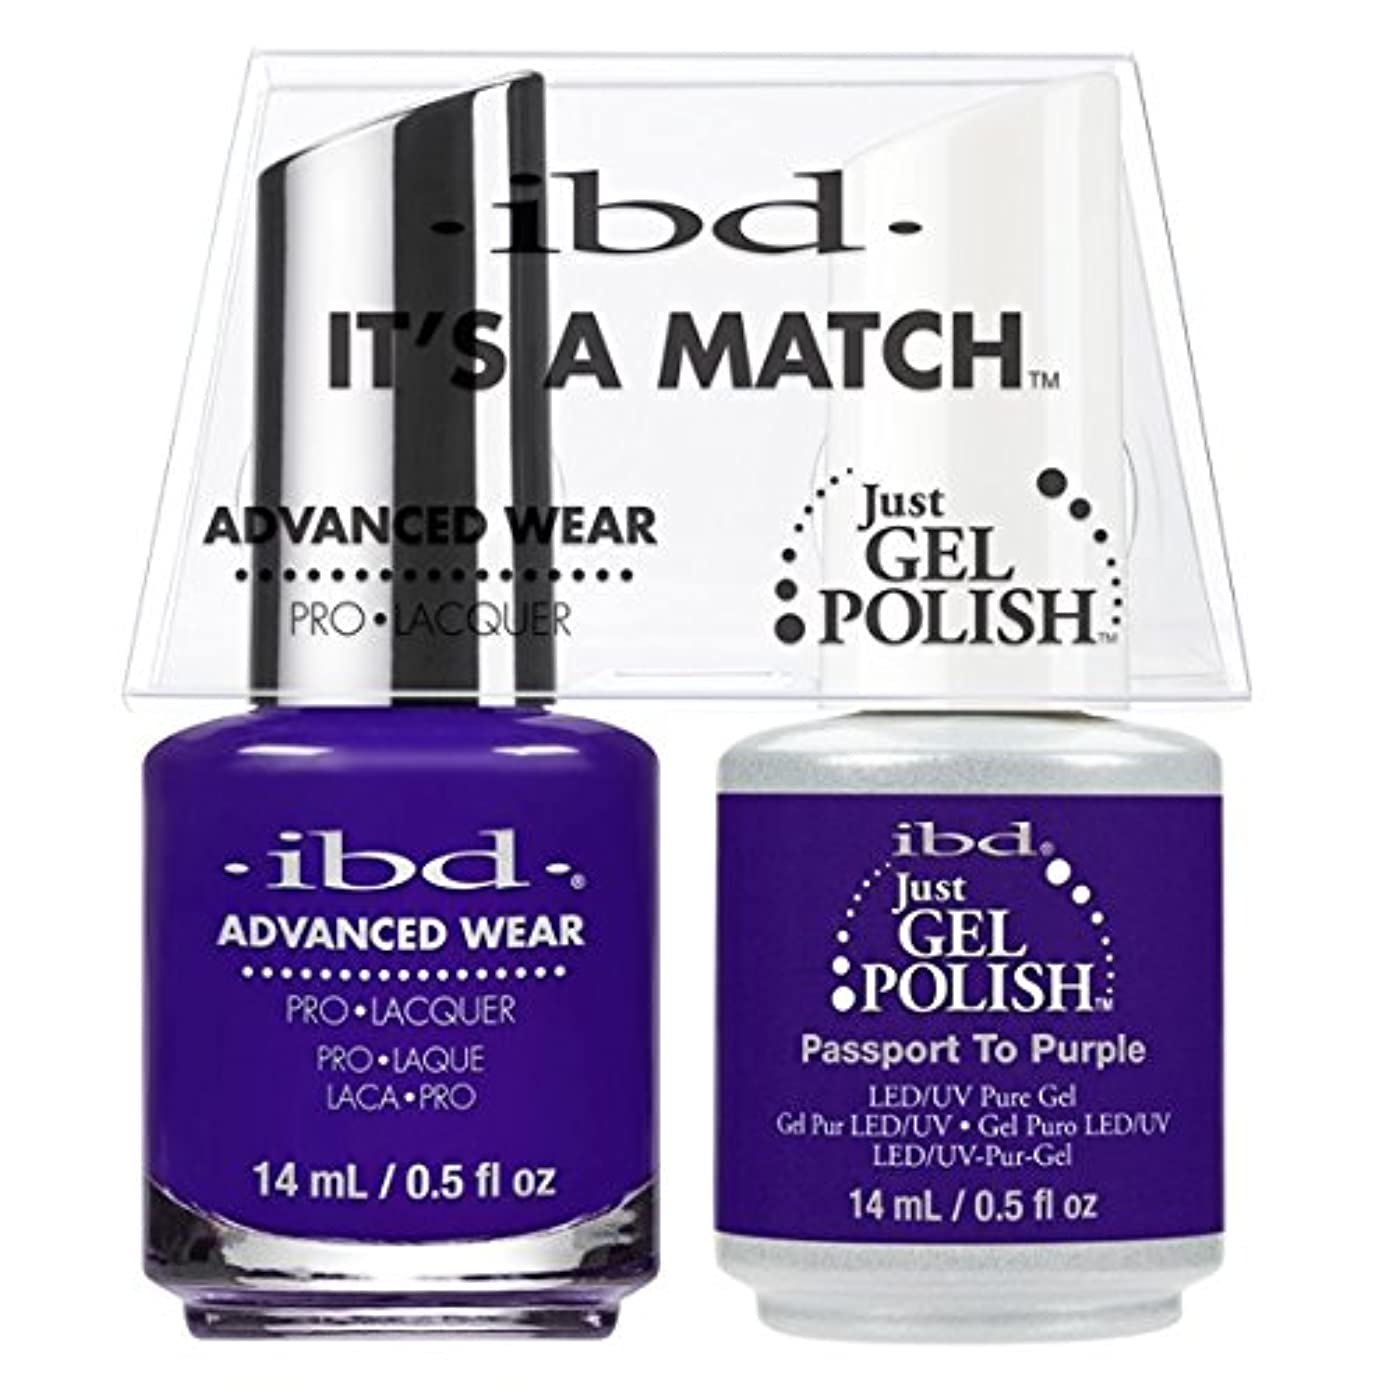 ibd - It's A Match -Duo Pack- Passport to Purple - 14 mL / 0.5 oz Each